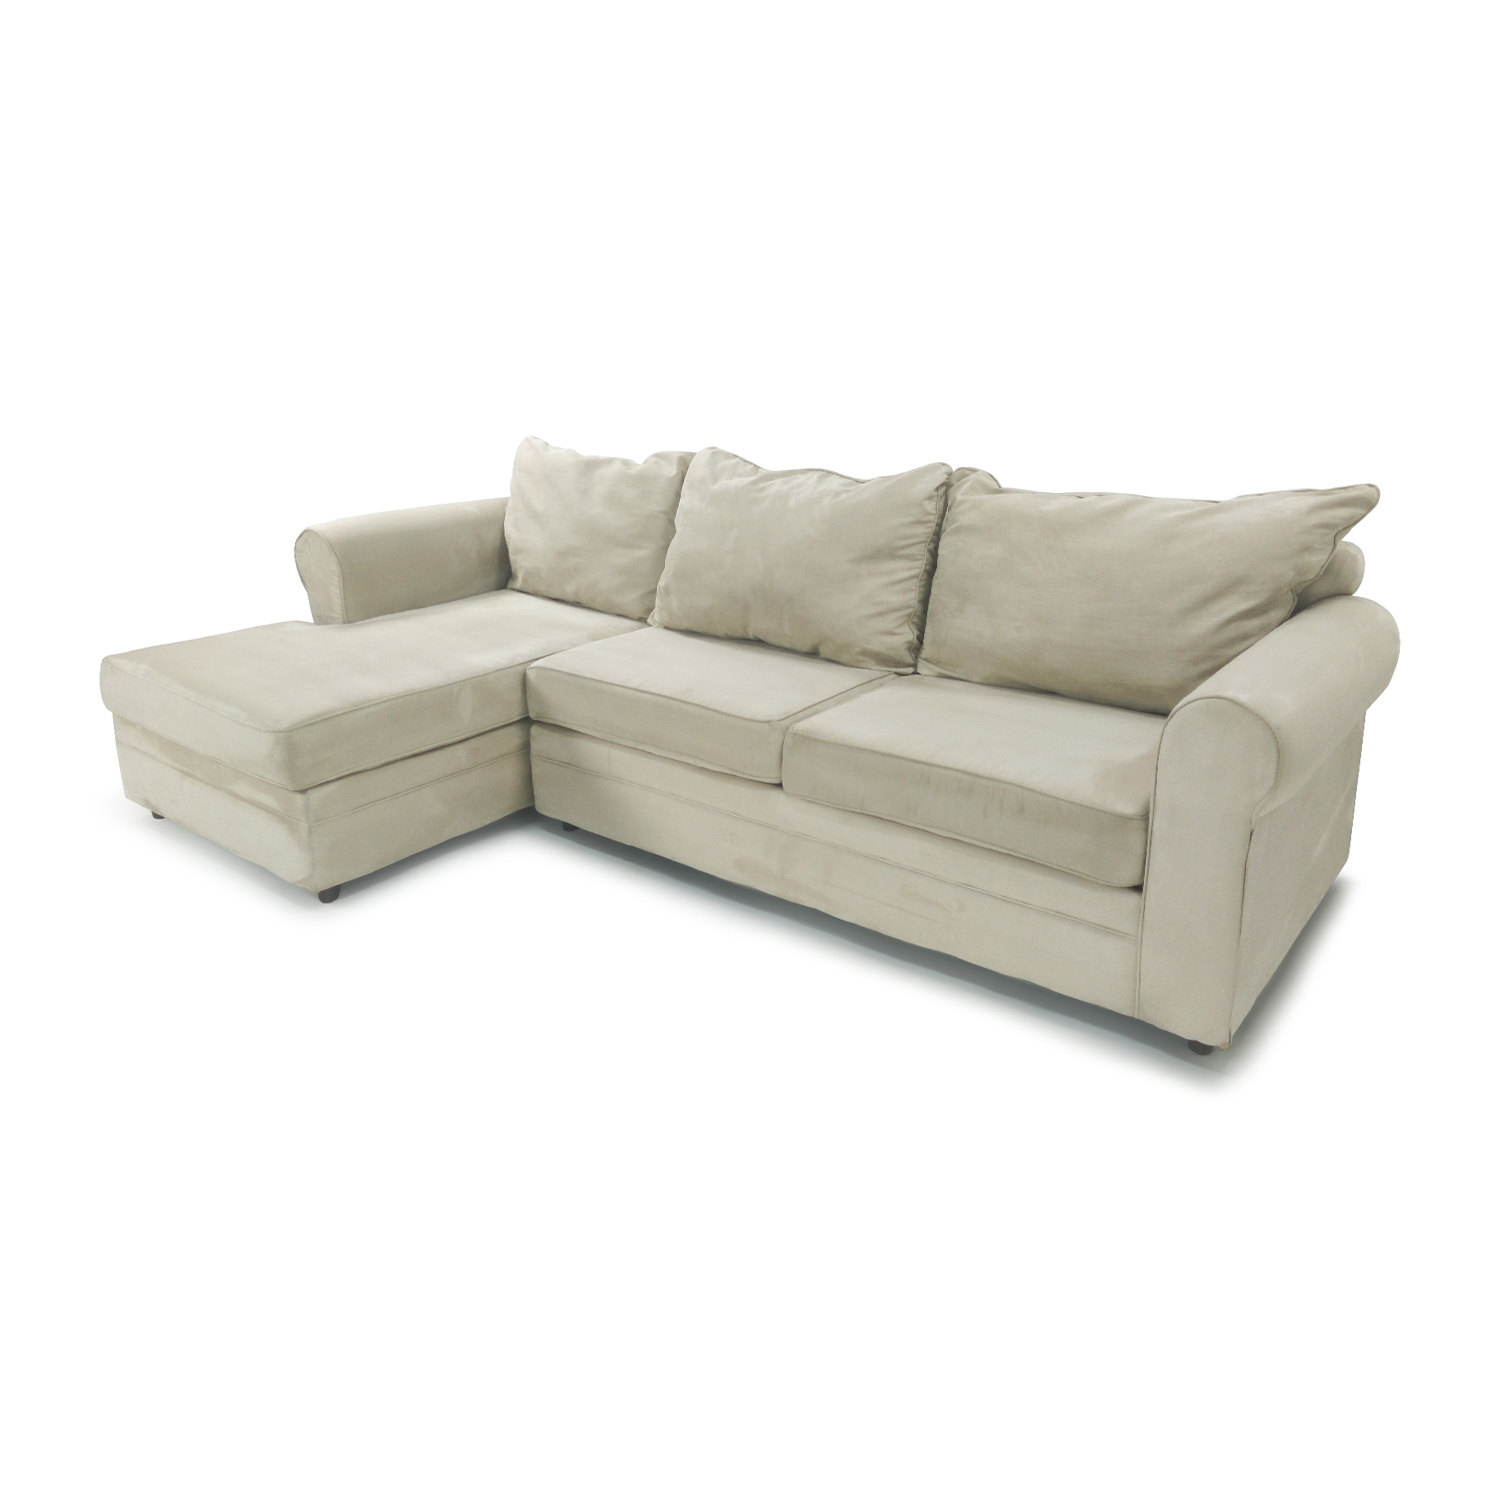 50 Off Bobs Furniture Venus 2 Piece Sectional Sofas